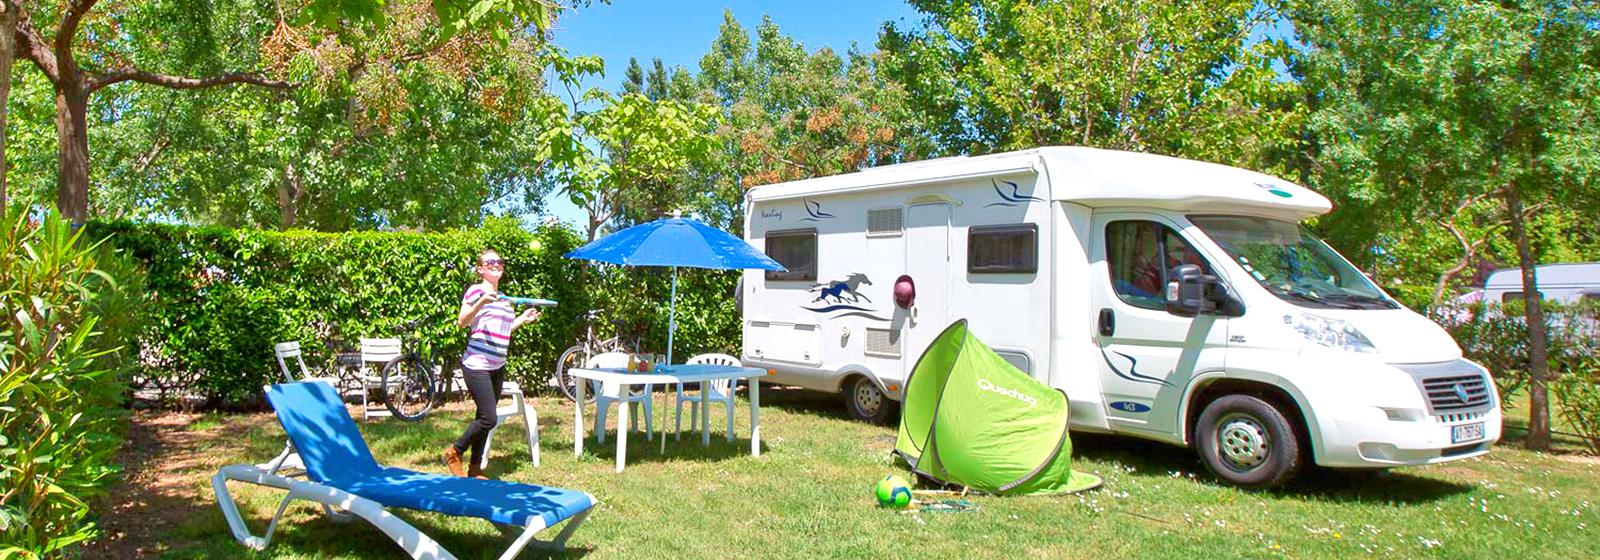 Emplacement tente confort – CAMPING LE FLORIDA